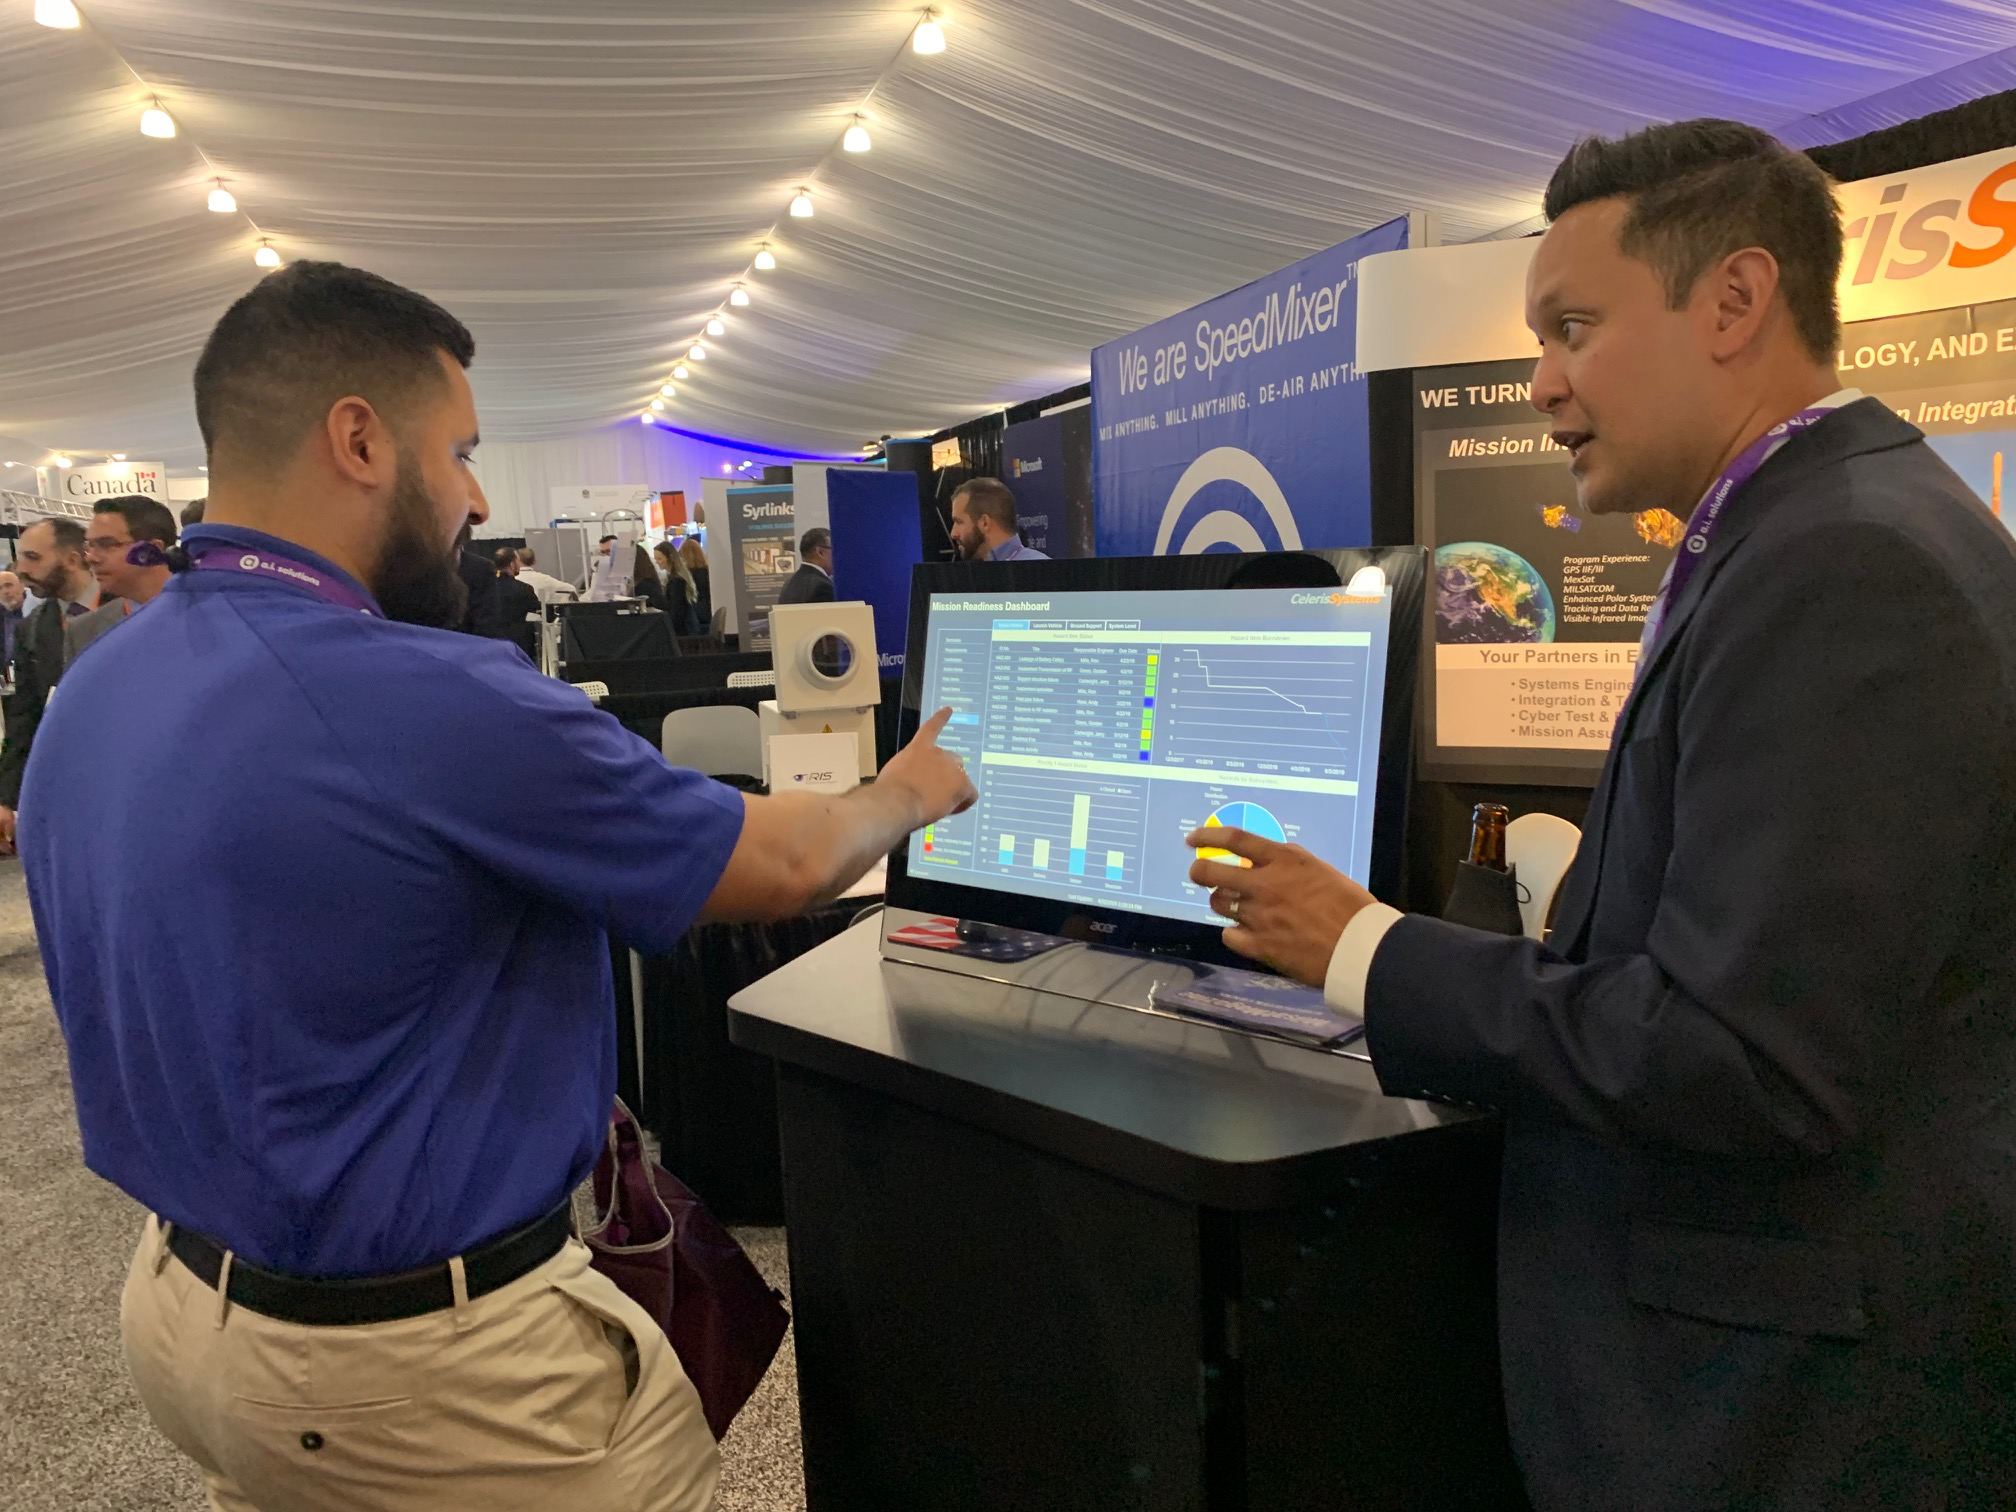 Celeris Systems Vice President Rob Enrico shares iRIS® touchscreen dashboard capability with a symposium attendee.